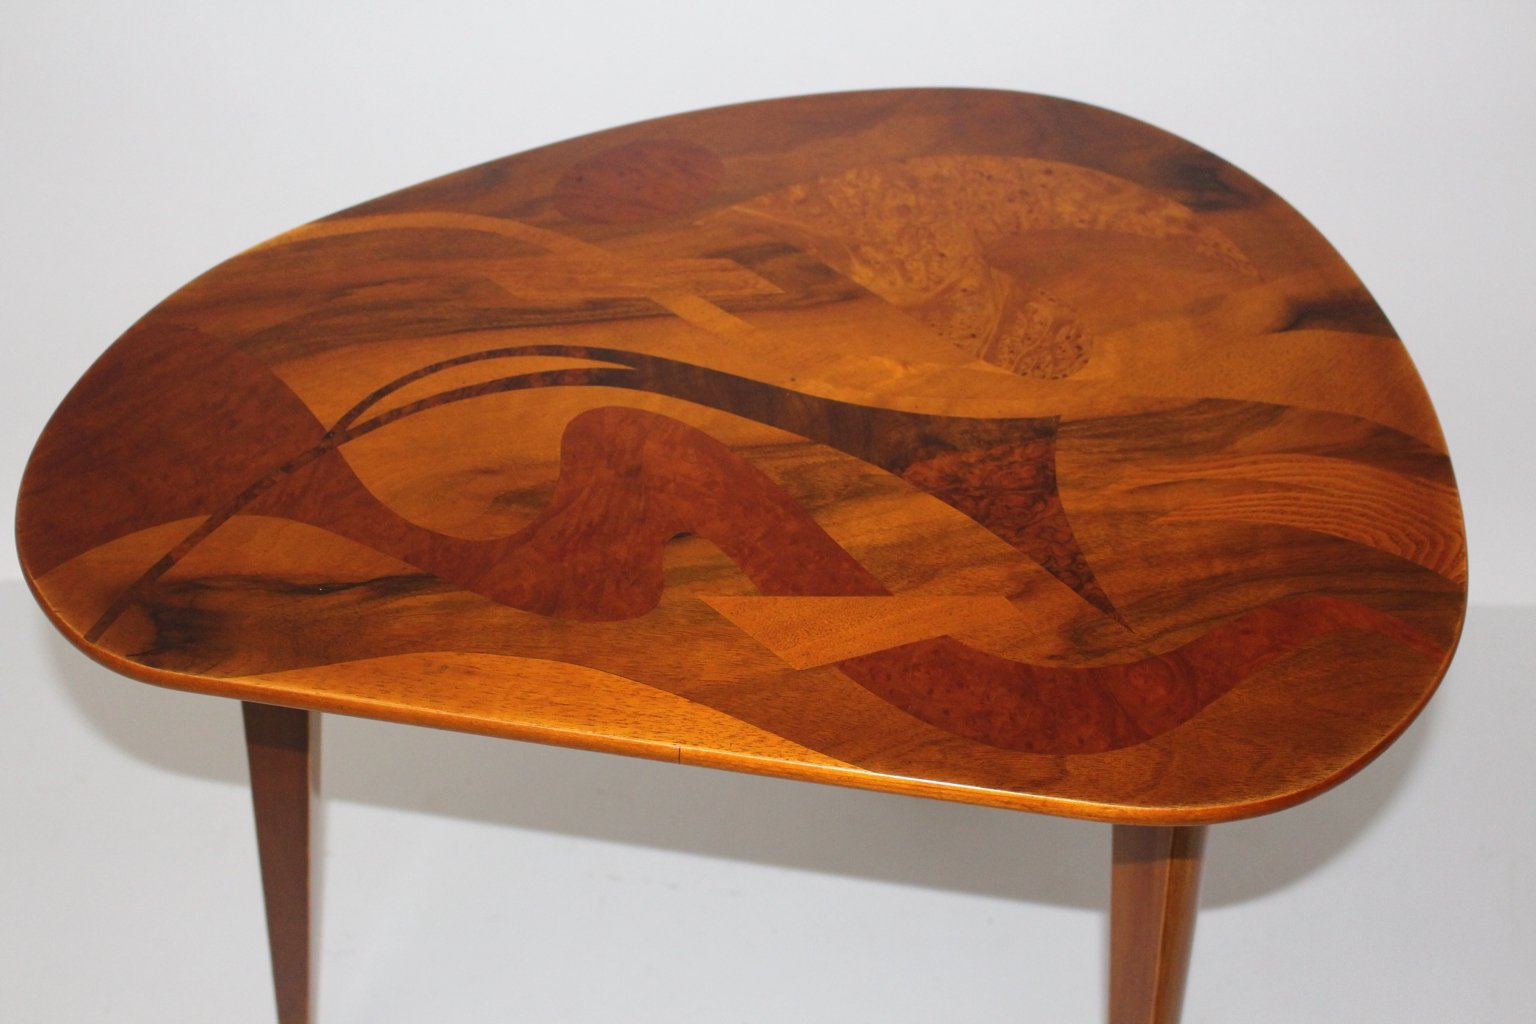 Vintage Austrian Inlaid Wooden Coffee Table, 1950s - Vintage Austrian Inlaid Wooden Coffee Table, 1950s For Sale At Pamono